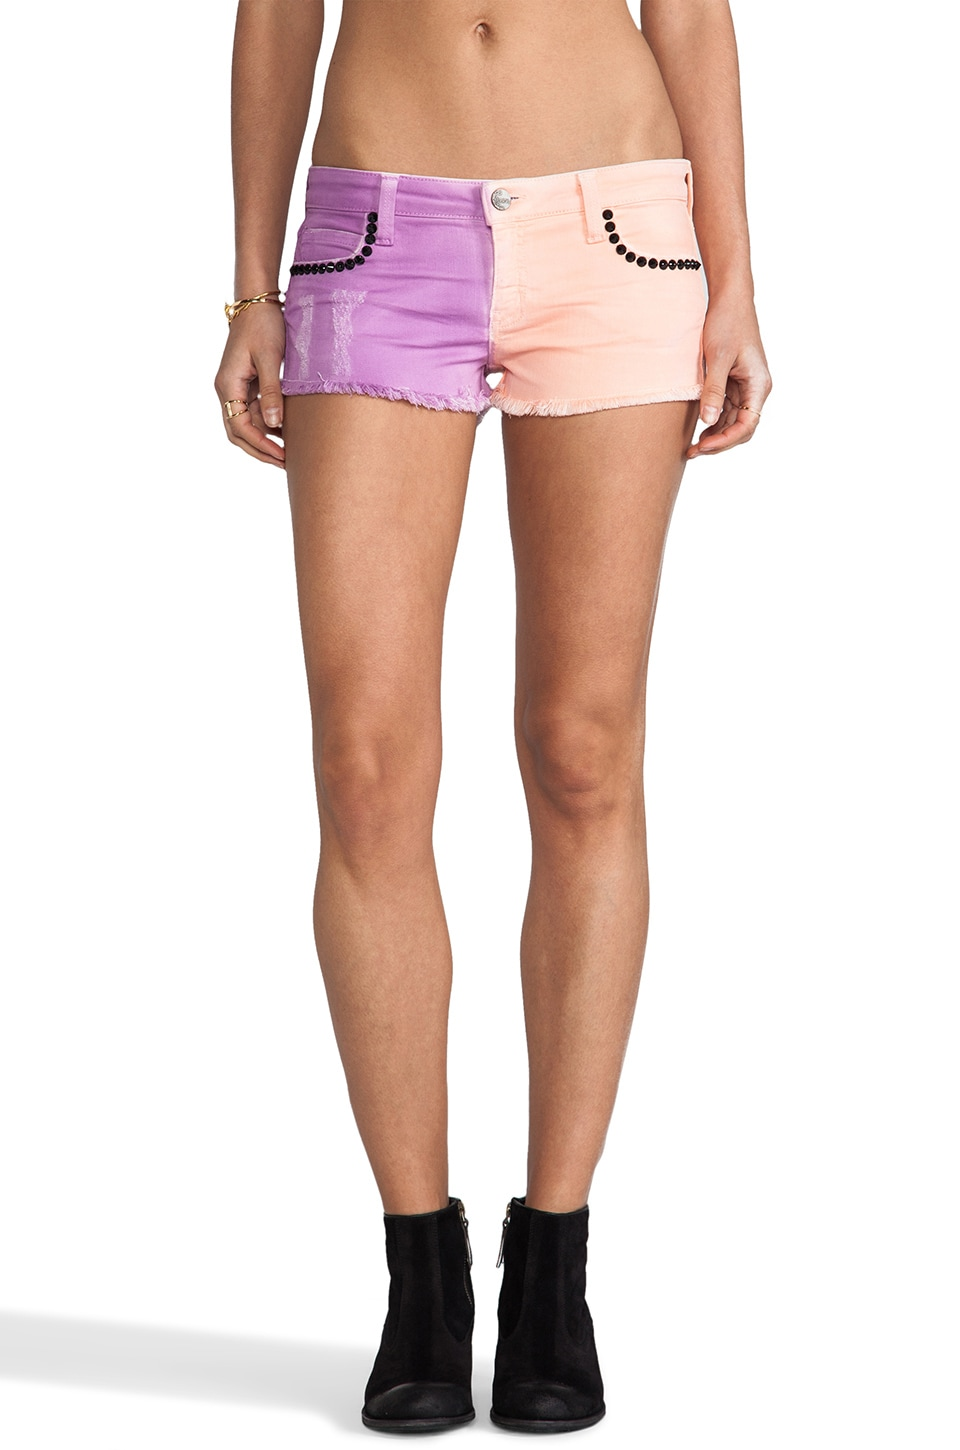 Frankie B. Jeans Twinster Short in Candy